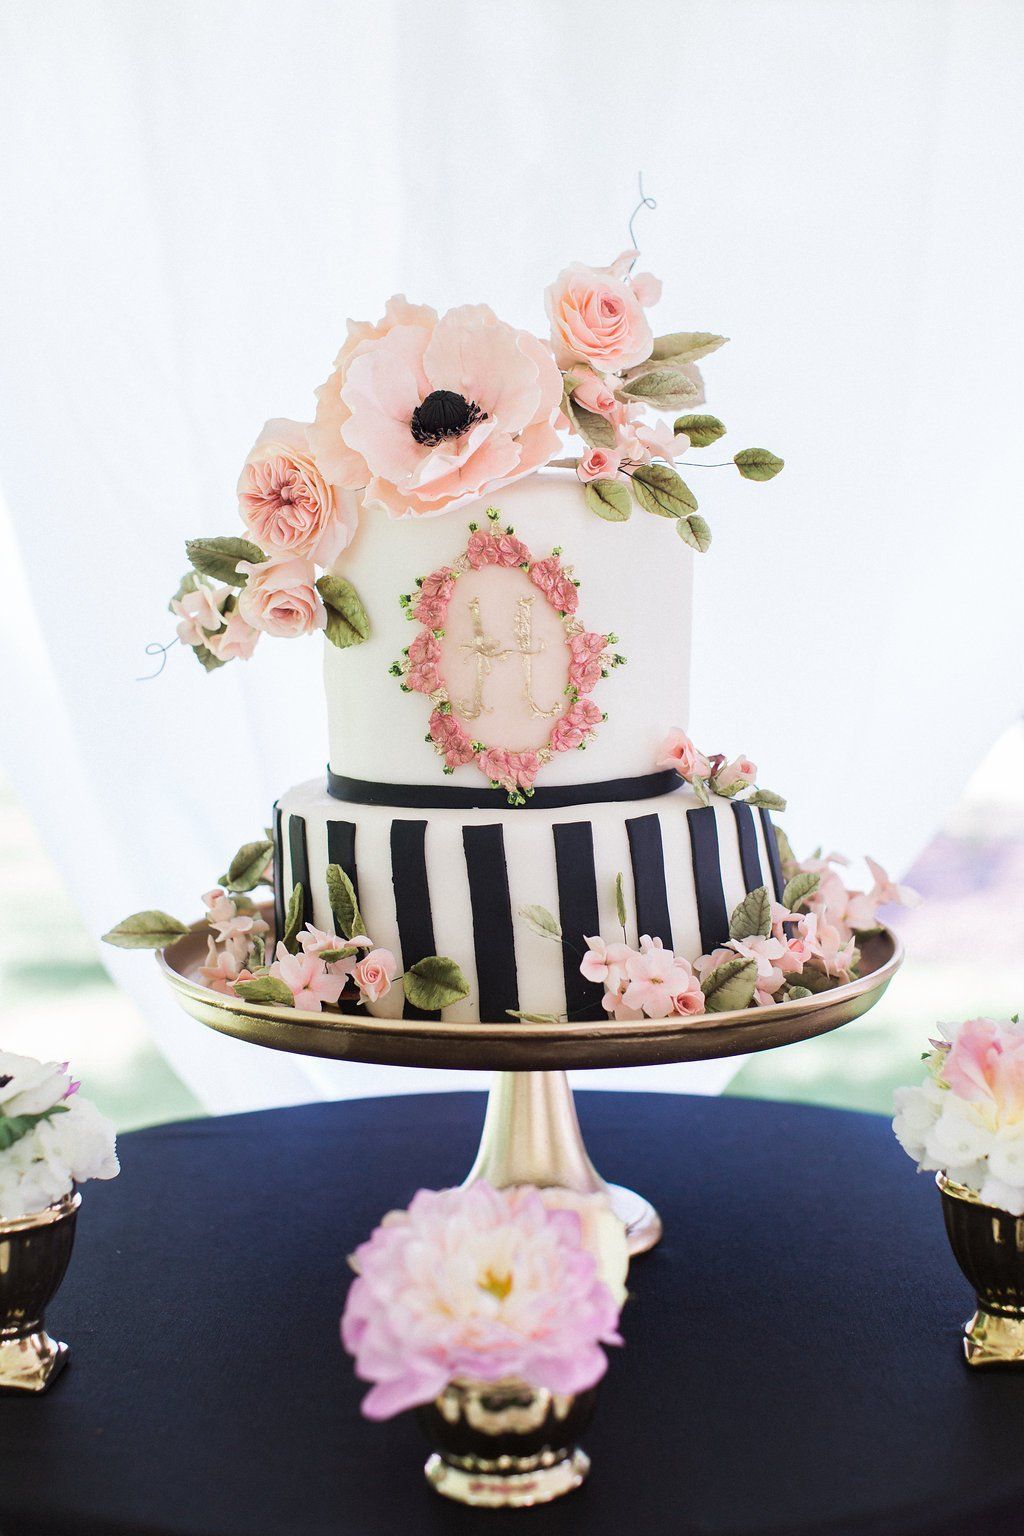 black and white cake with pink fondant flowers at kate spade inspired bridal shower - Black & White Kate Spade Inspired Bridal Shower